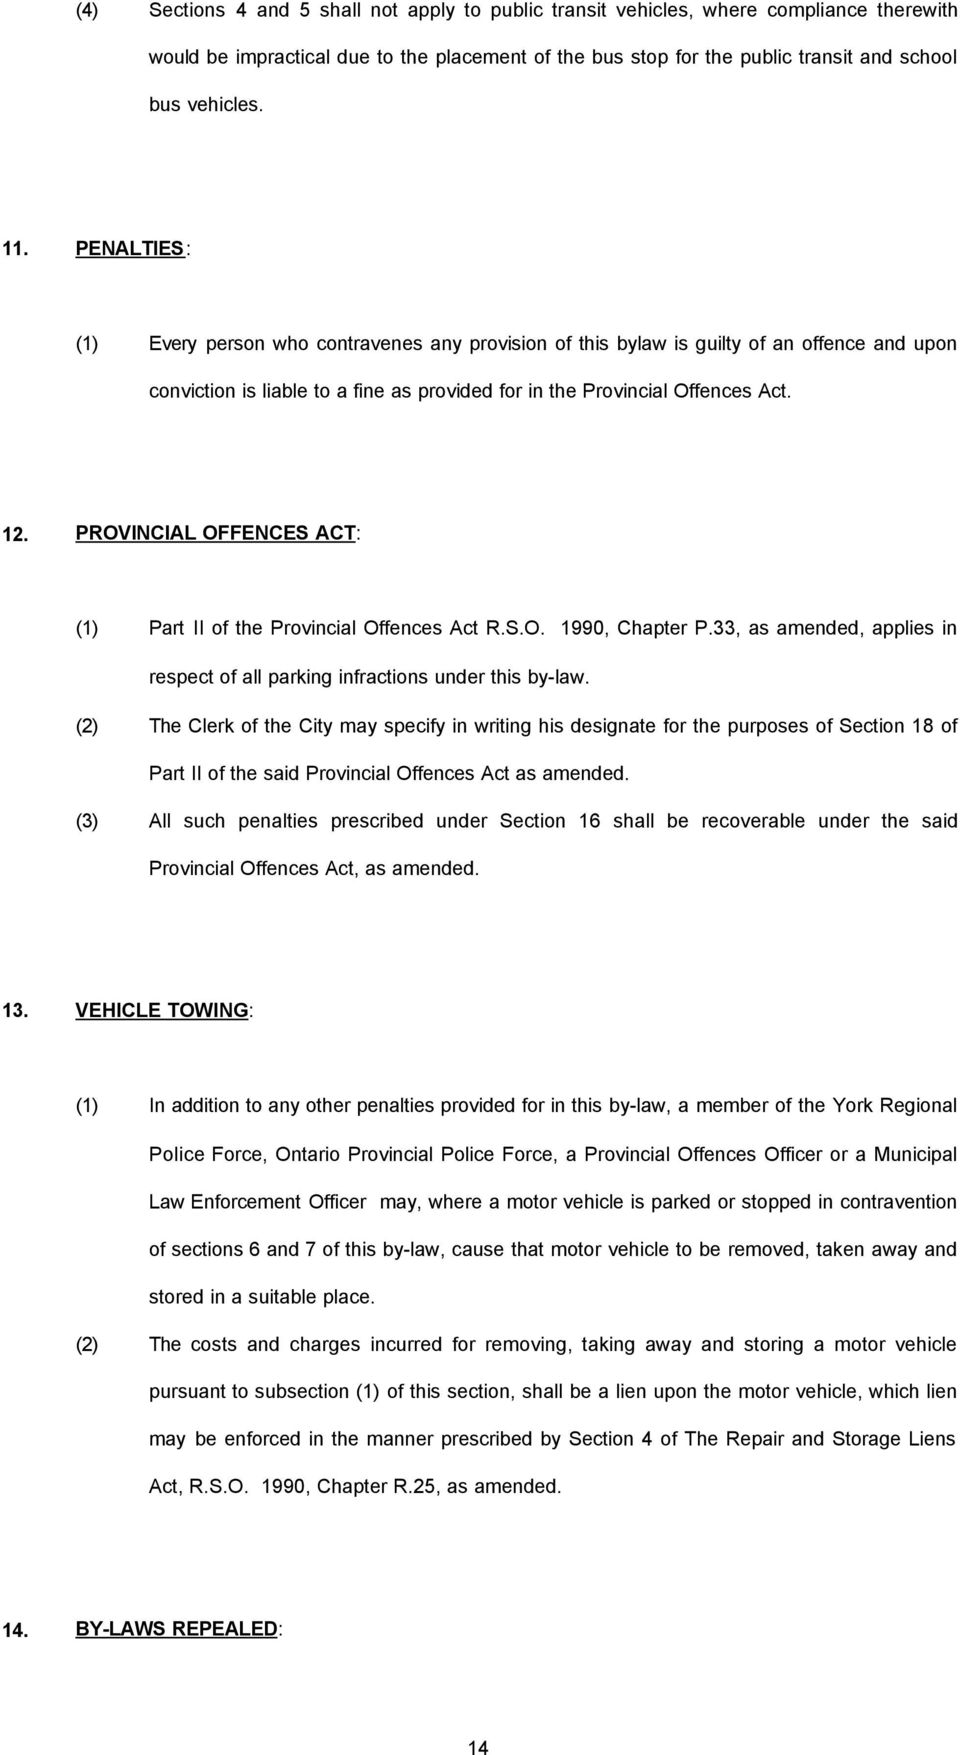 PROVINCIAL OFFENCES ACT: (1) Part II of the Provincial Offences Act R.S.O. 1990, Chapter P.33, as amended, applies in respect of all parking infractions under this by-law.